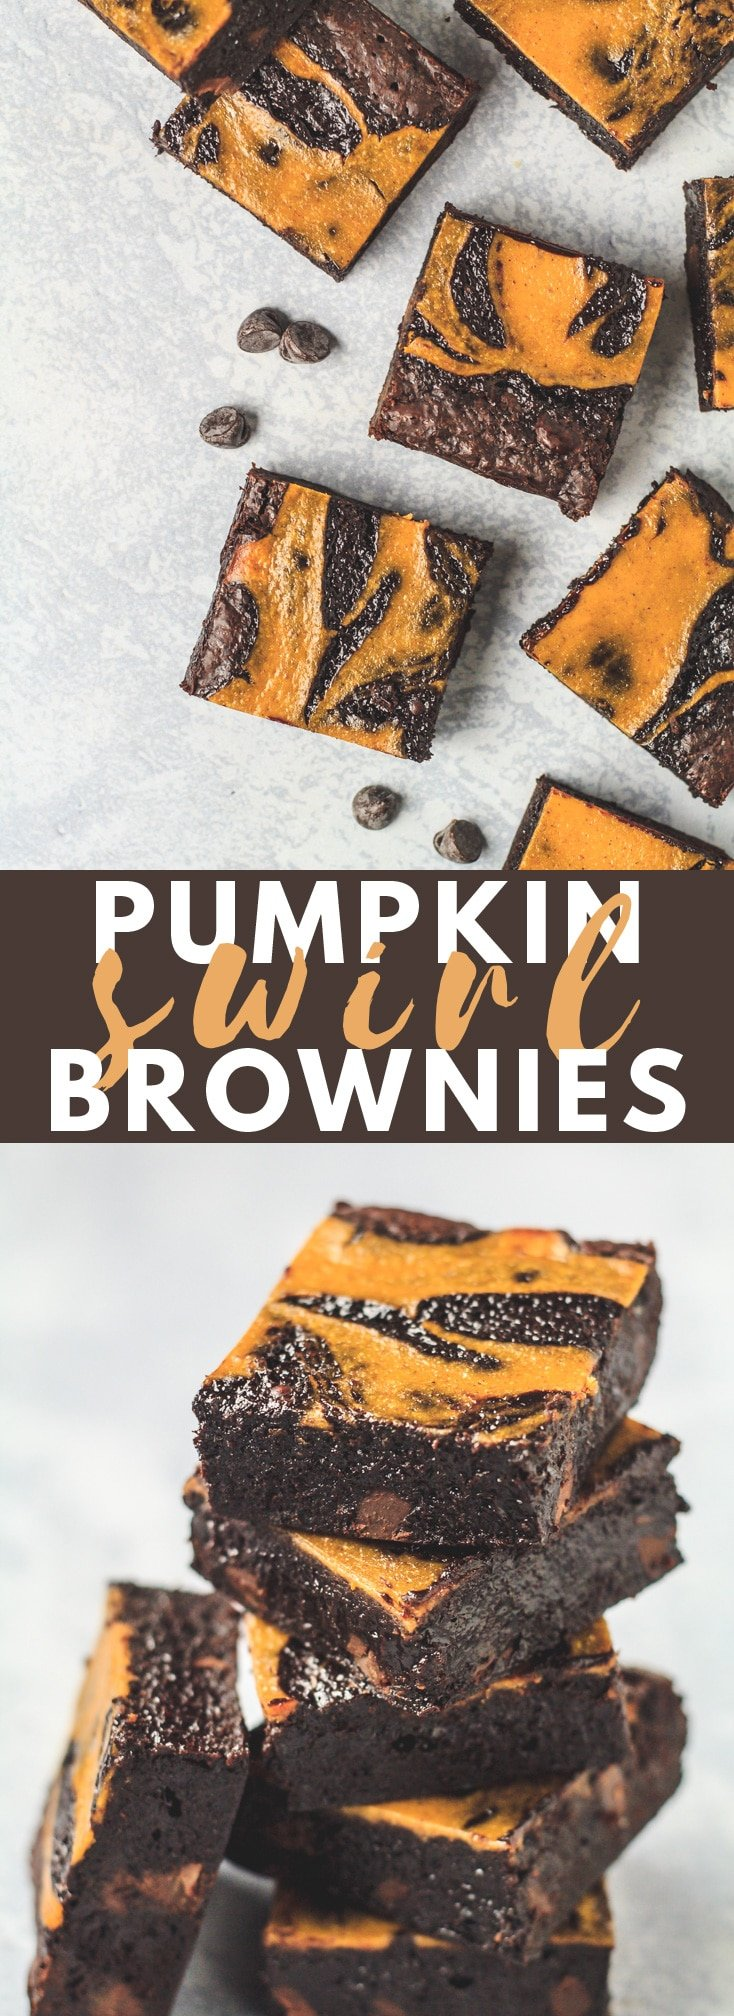 Pumpkin Swirl Brownies - Deliciously thick and fudgy chocolate brownies that are topped with a perfectly spiced pumpkin swirl. These are the ULTIMATE brownies to make in autumn/fall time! #pumpkin #chocolate #brownies #fallrecipes